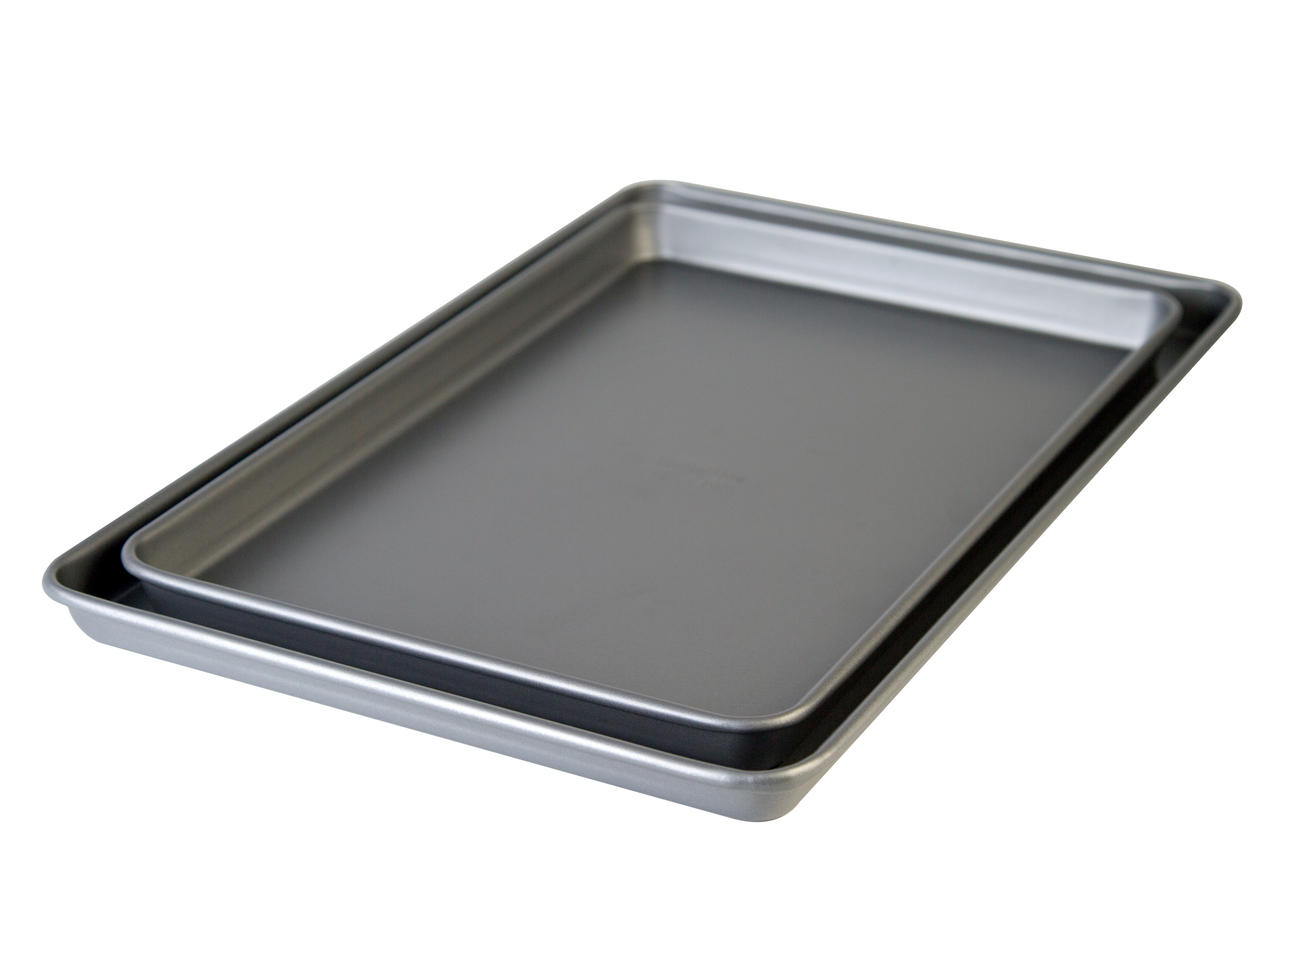 2 Piece Carbon Steel Bakeware Set From Cooking Light